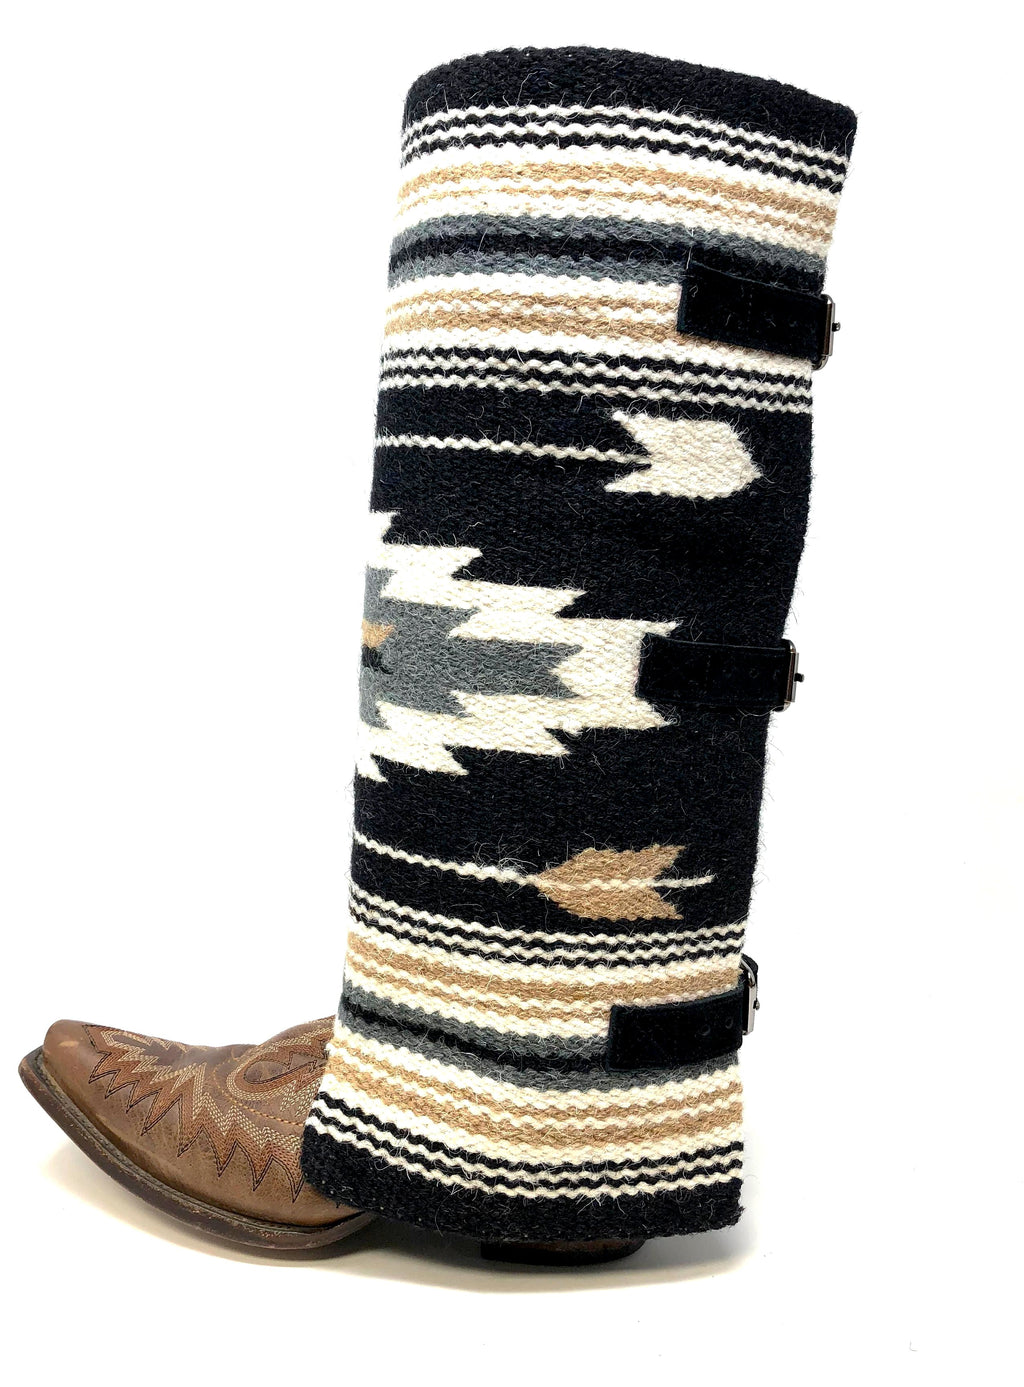 All Boot Rugs And Gift Cards Boot Rugs